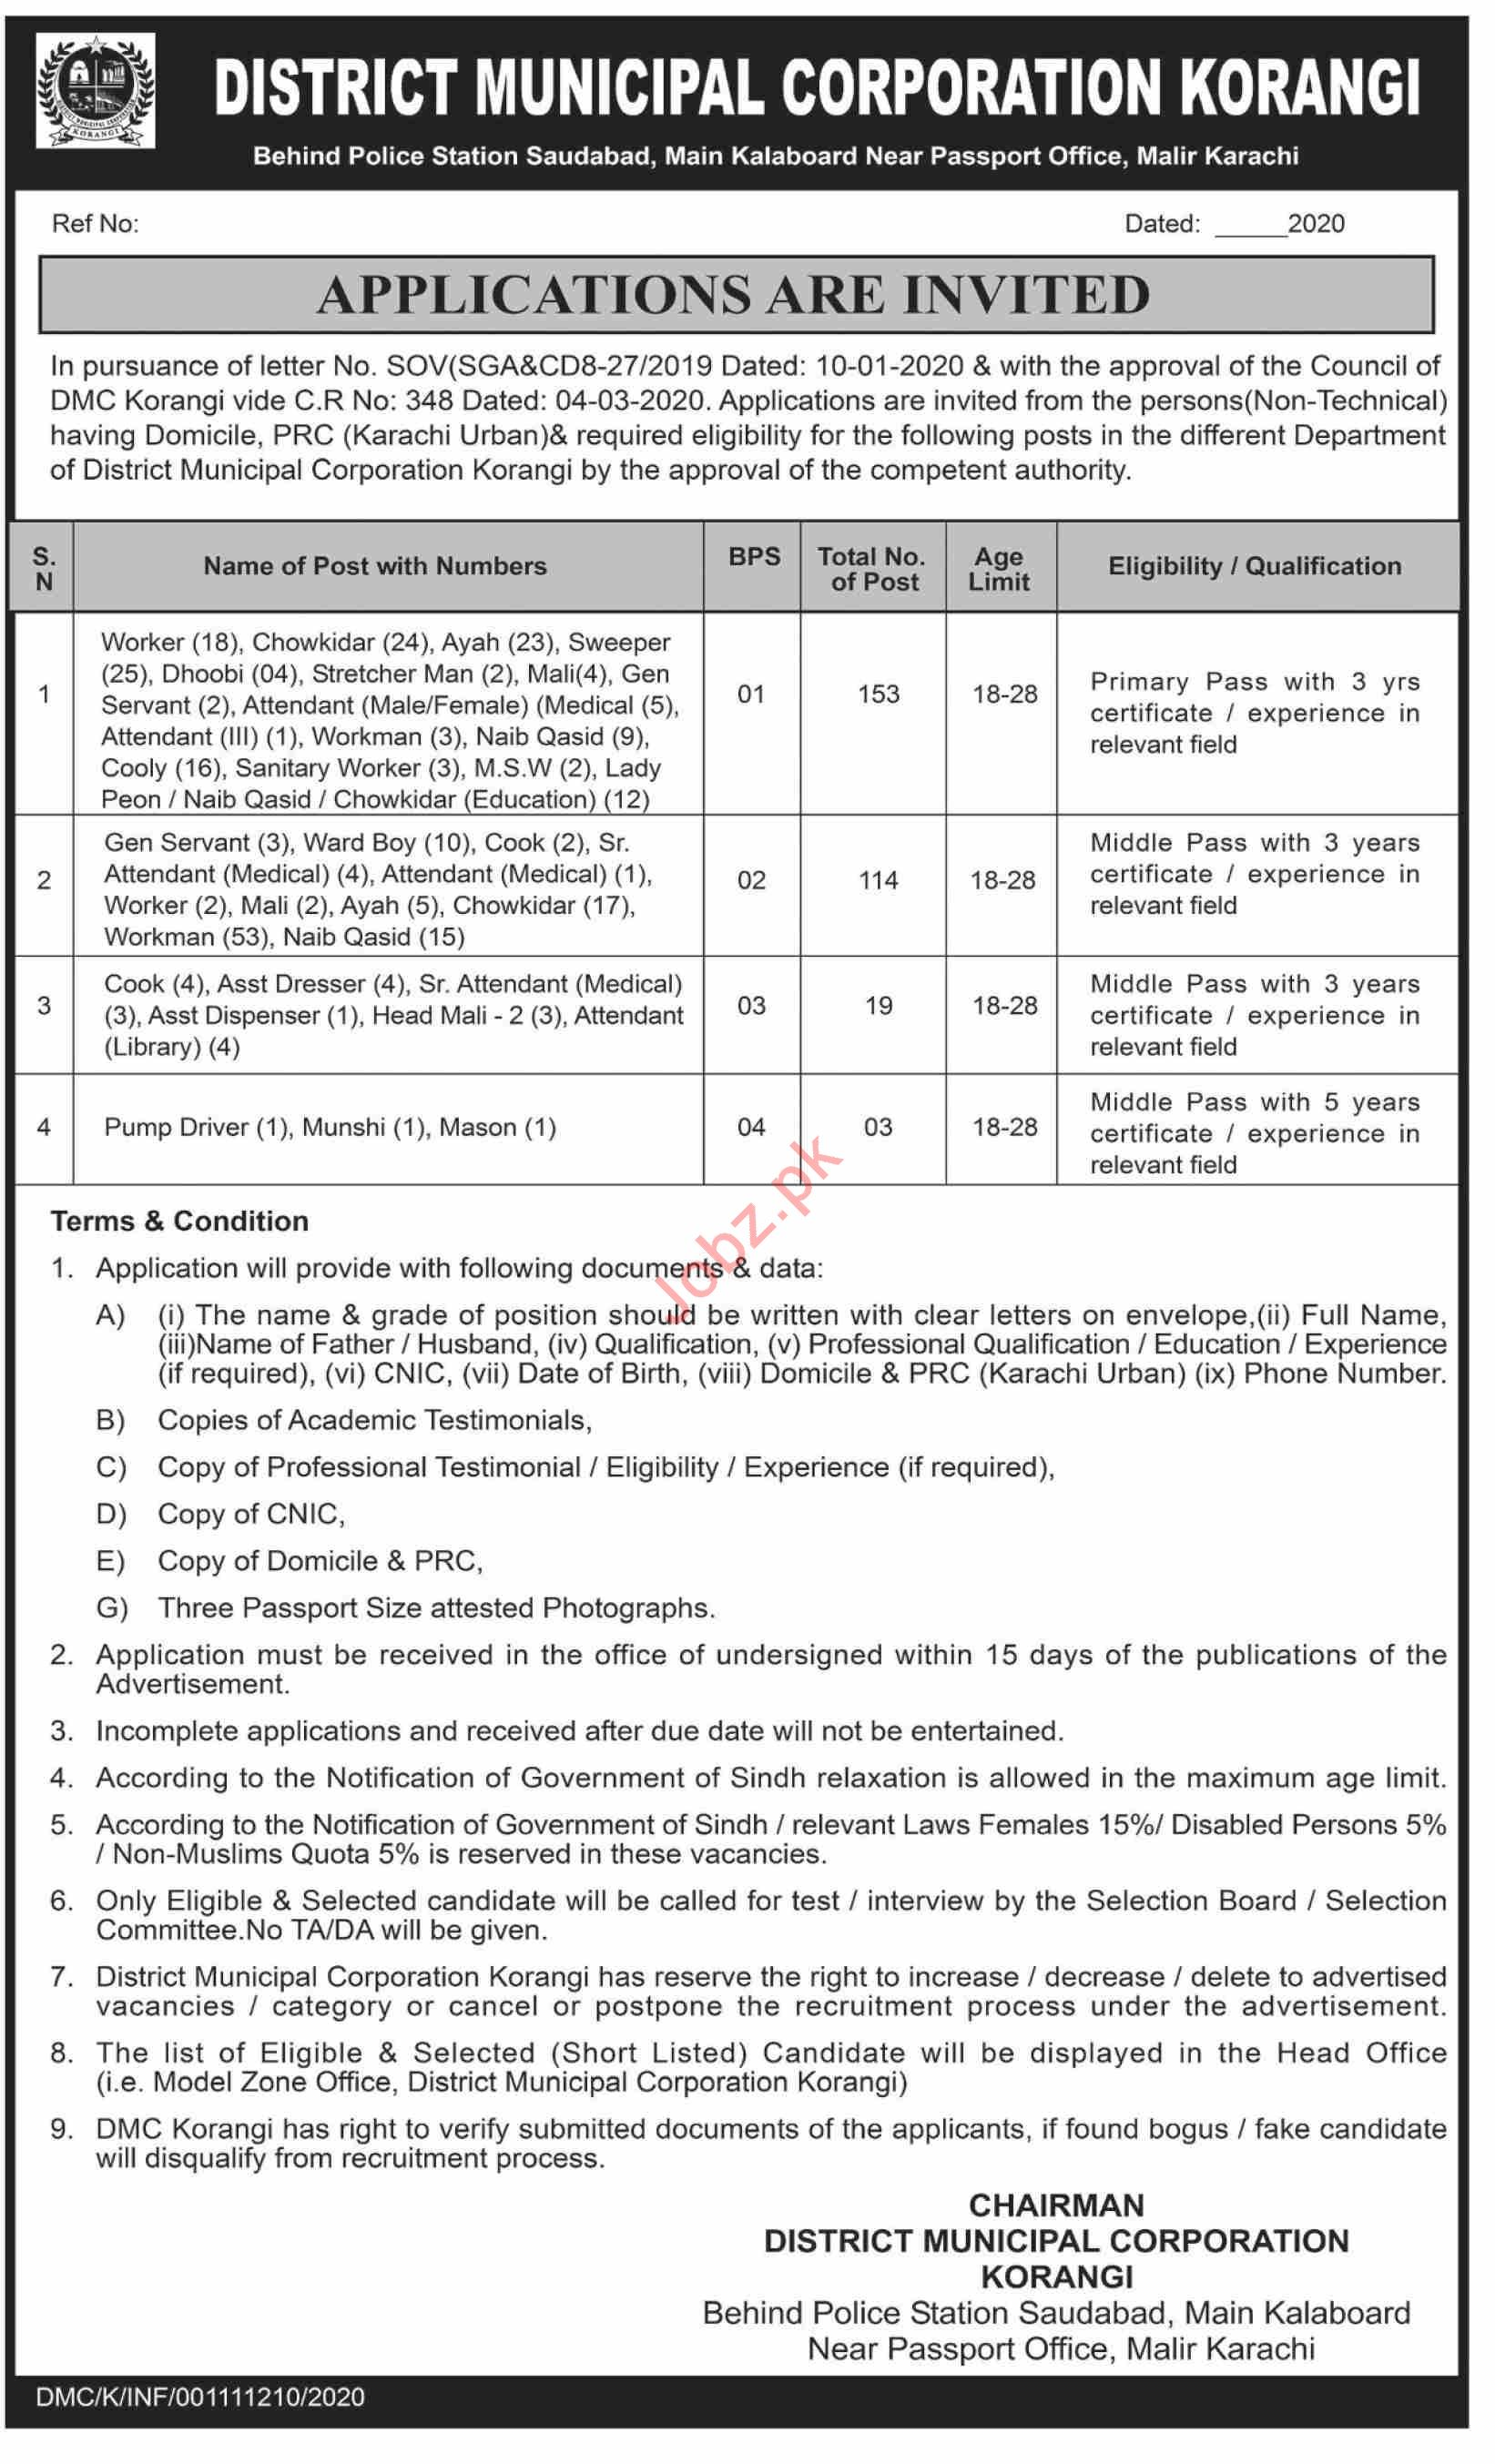 District Municipal Corporation DMC Korangi Karachi Jobs 2020